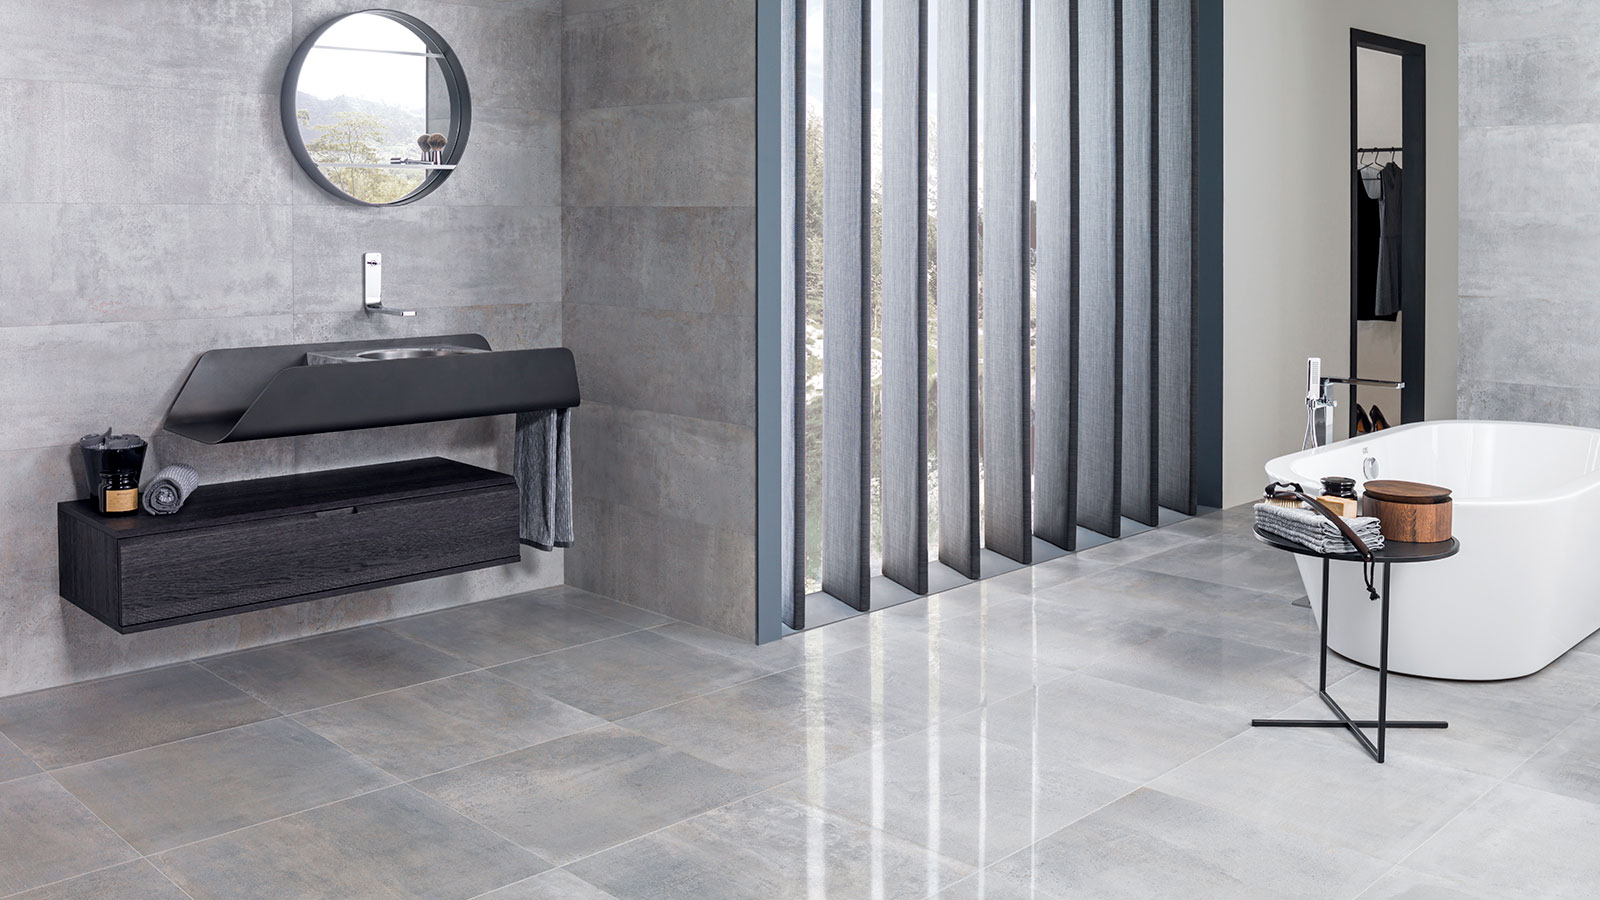 Contact Cement For Ceramic Tile